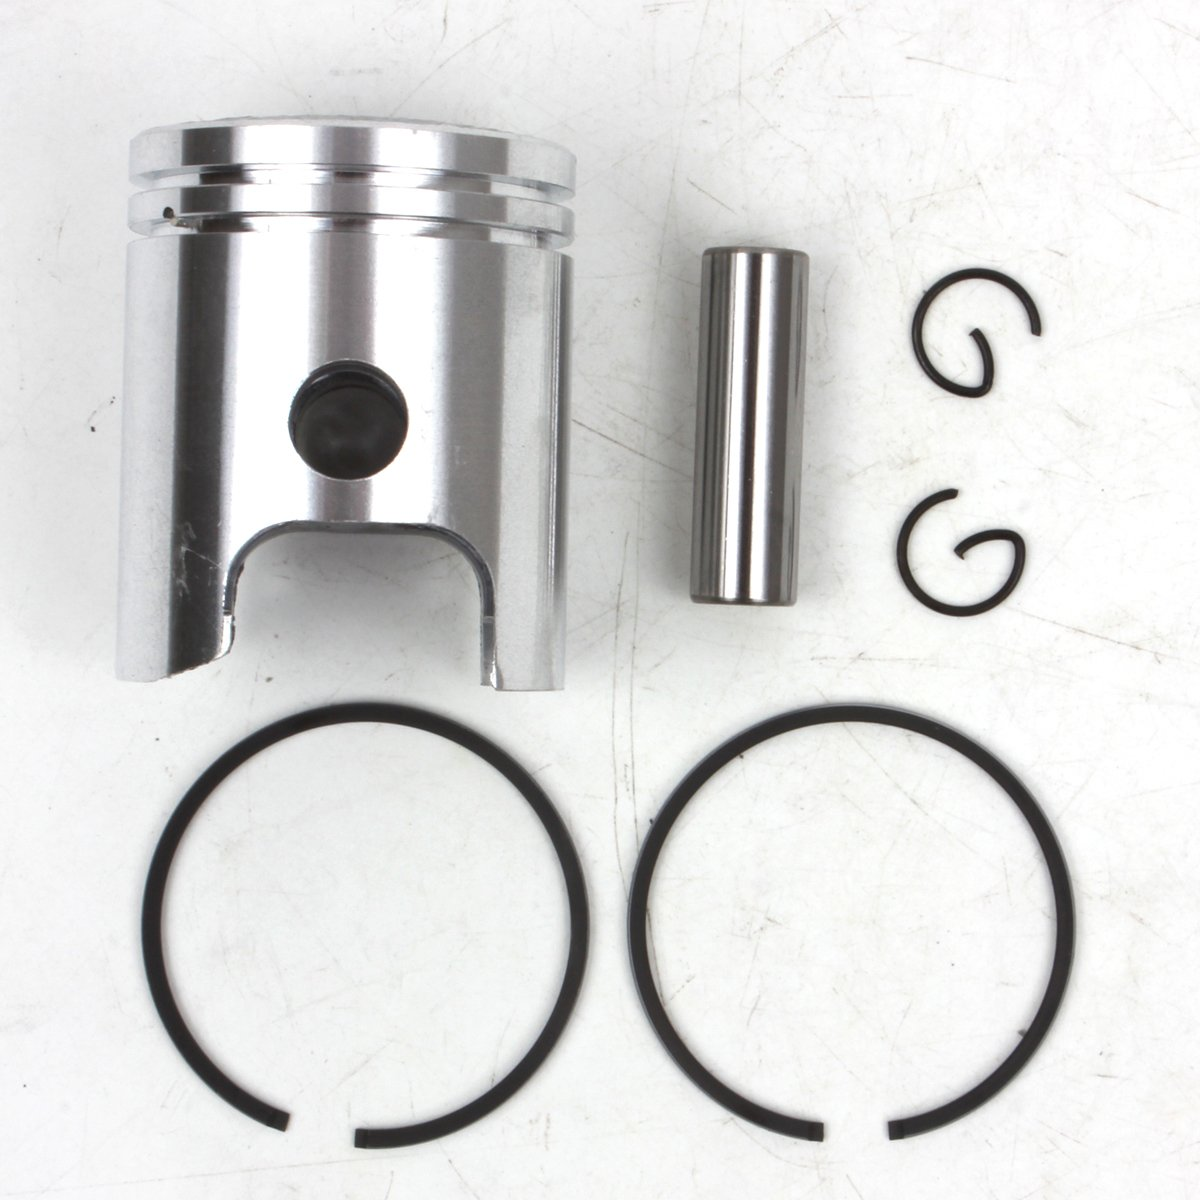 Piston Kit for 1994-2015 PW50 Y-Zinger 40mm Standard Bore STD 2-stroke 2000 2001 2002 2003 2004 2005 2006 2007 2008 2009 2010 2011 2012 2013 2014 PRO CAKEN